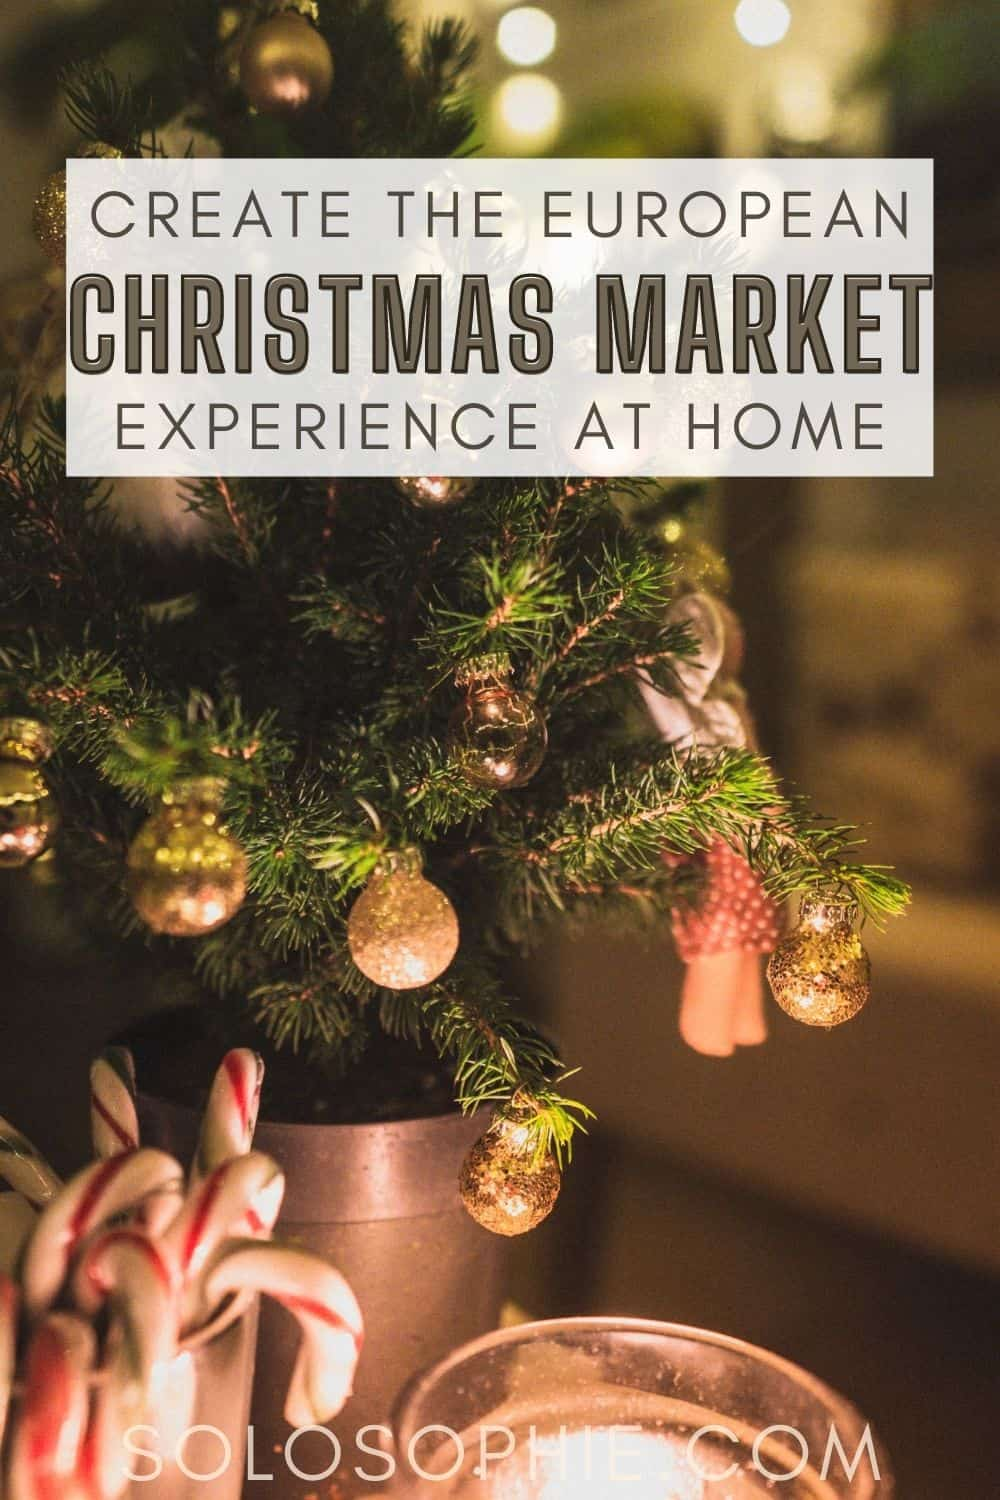 How to Recreate the European Christmas Market Experience at Home